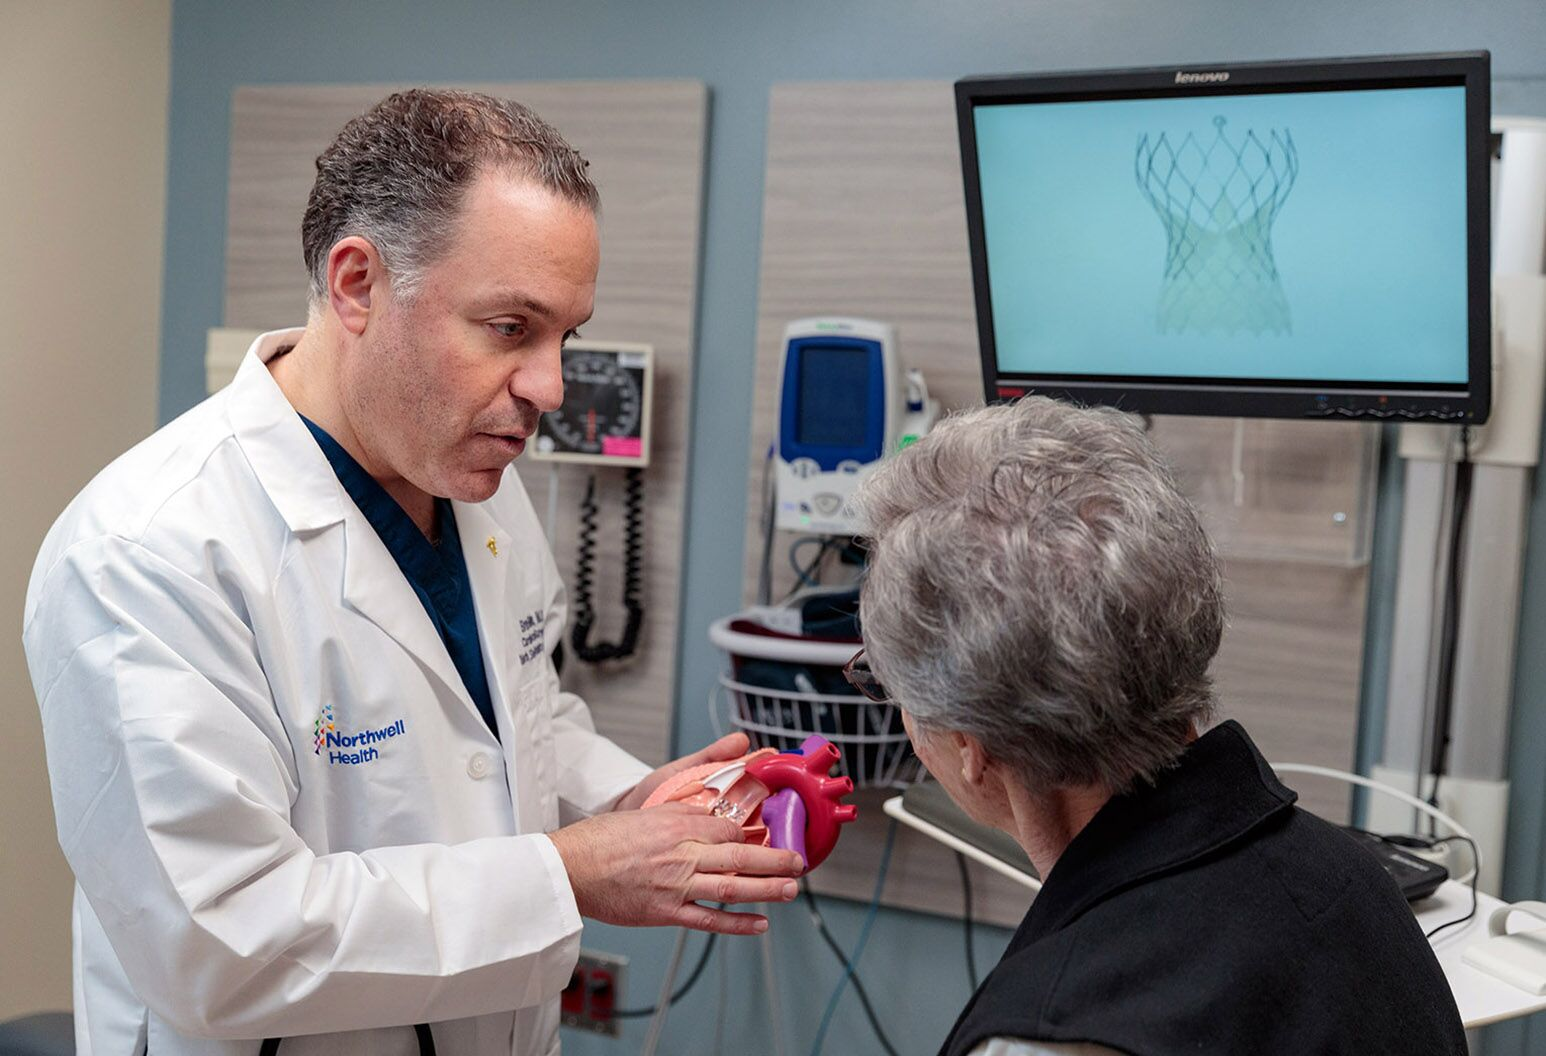 A doctor and patient pictured together, the doctor is holding a model of a heart.